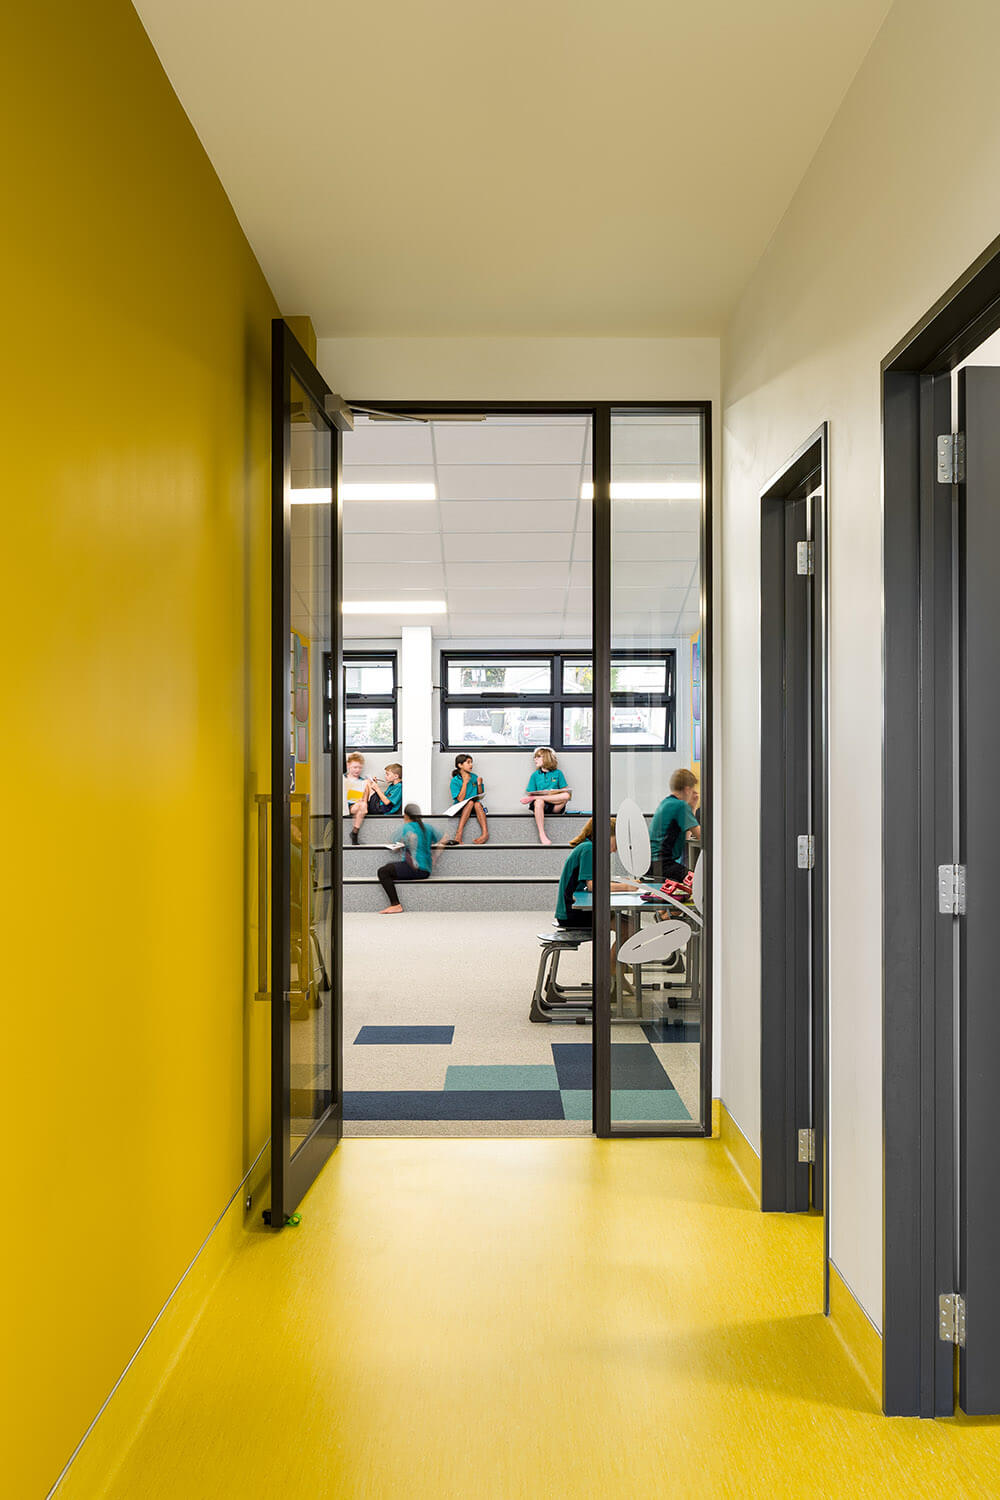 Bright interiors for accessible wayfinding